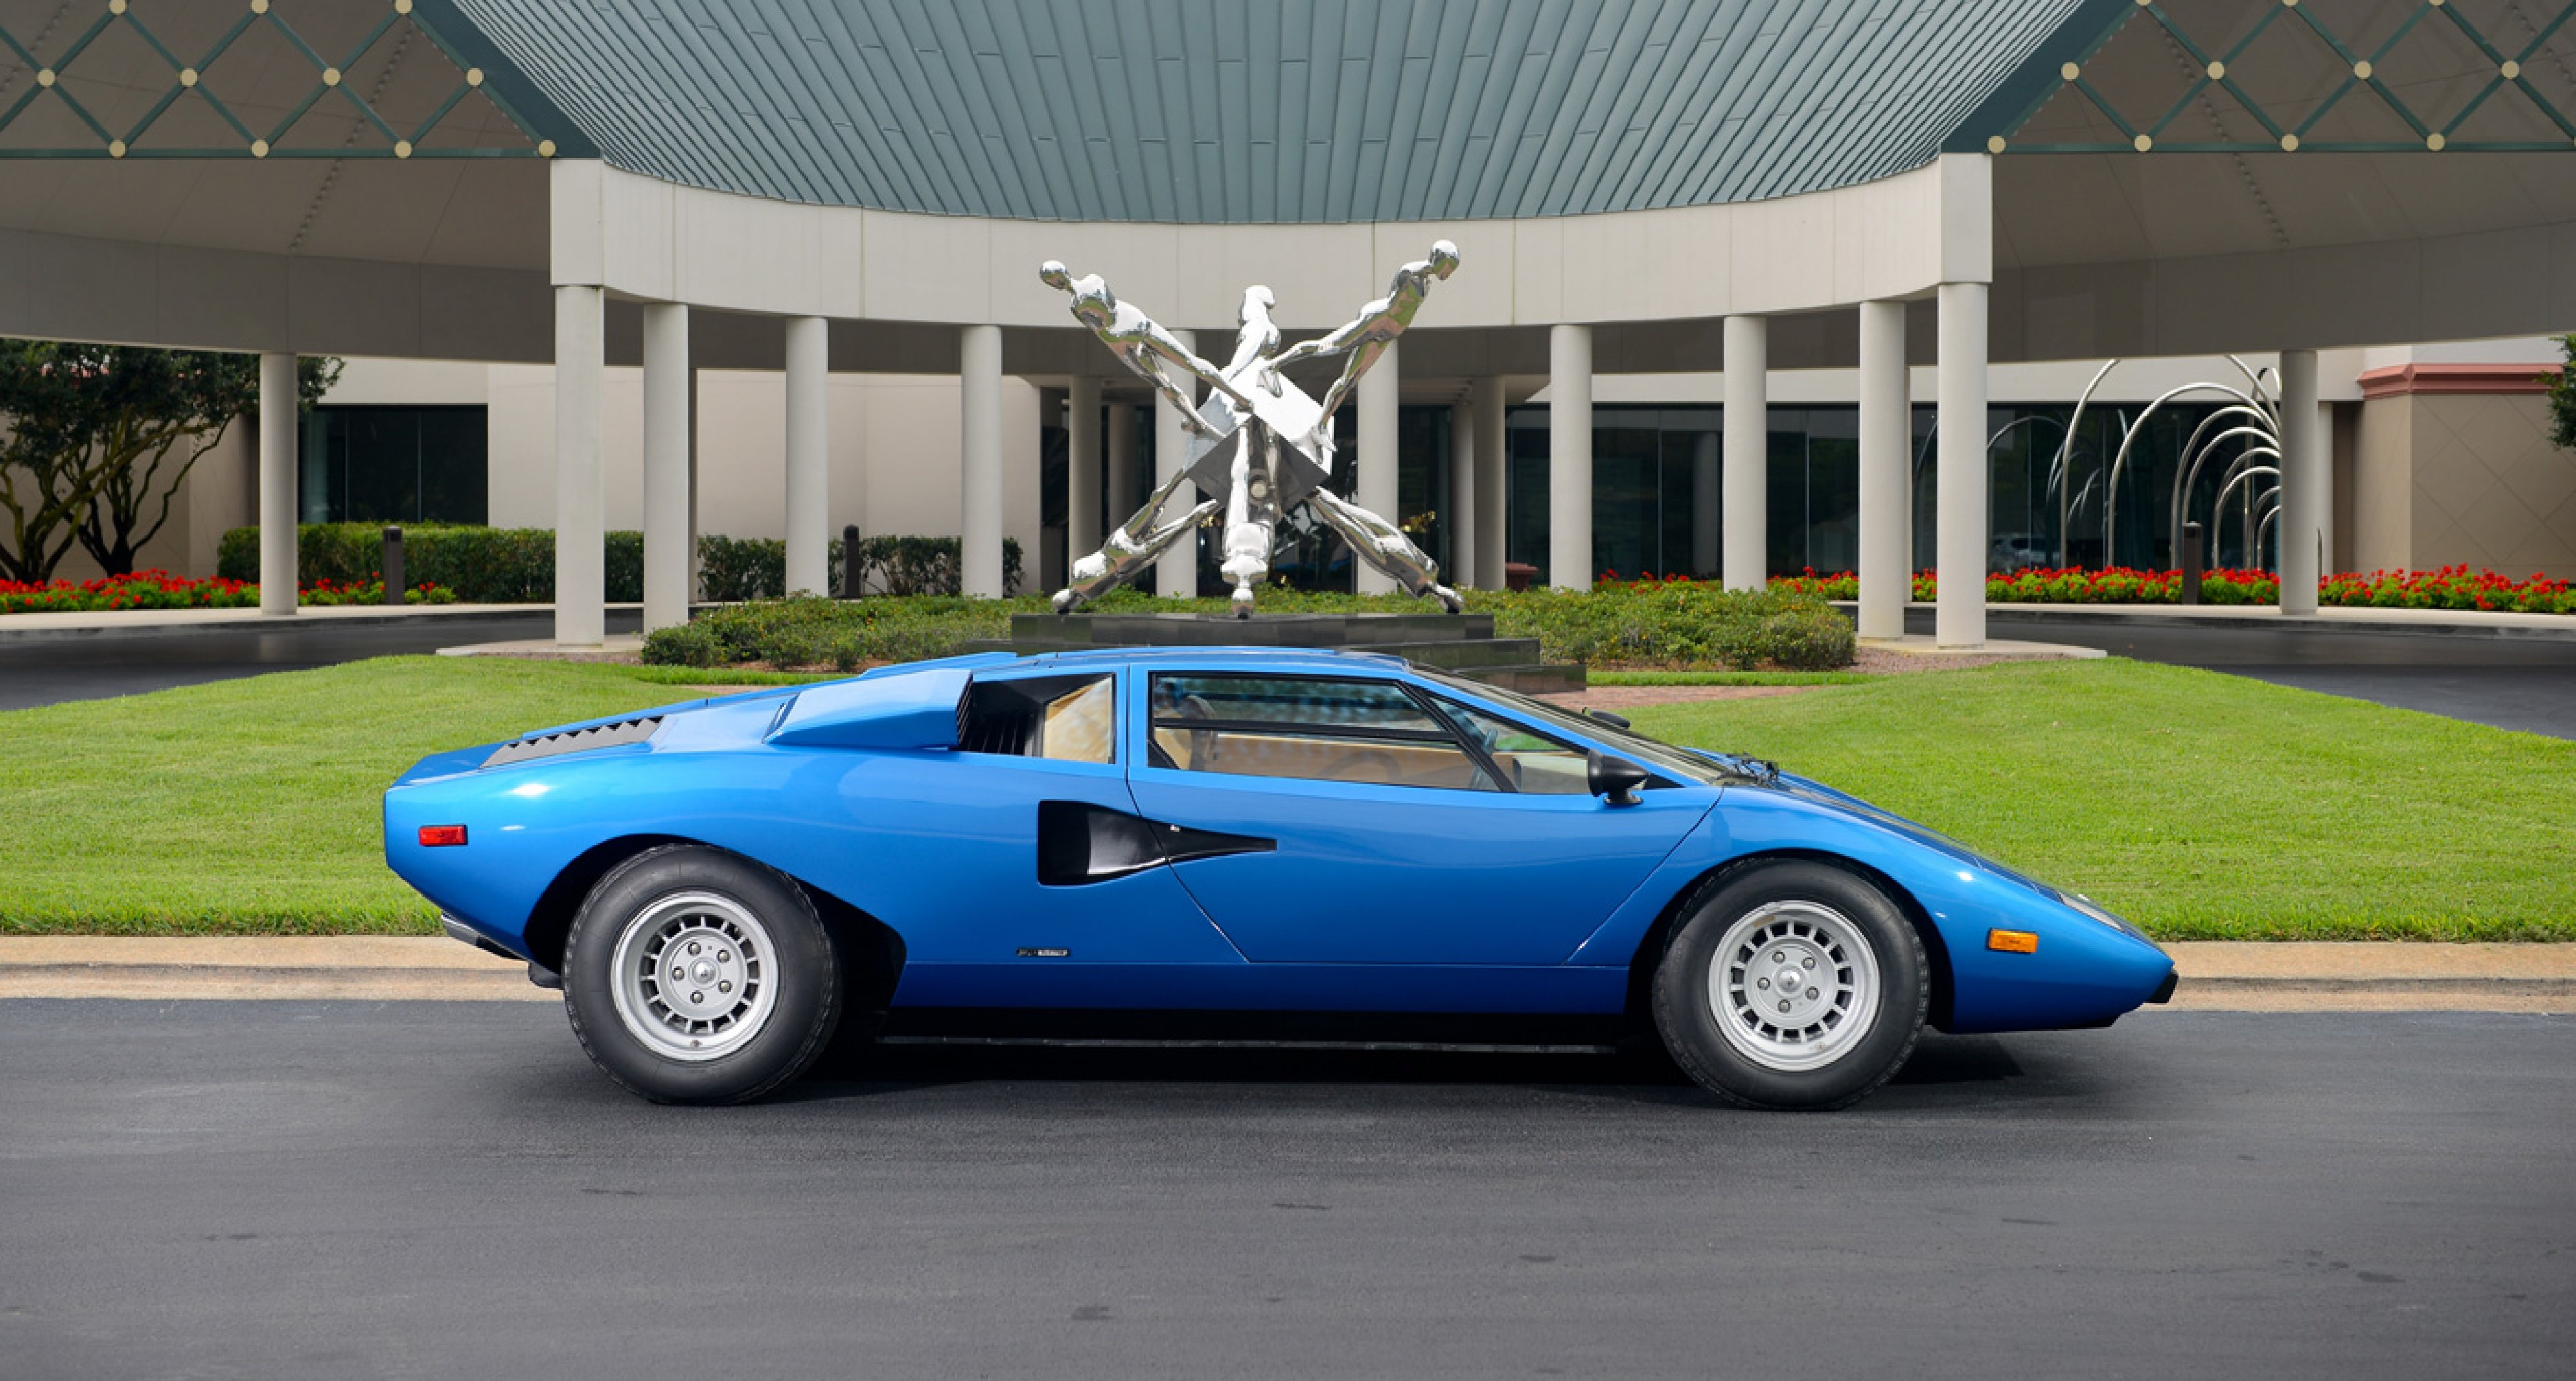 The 1975 Lamborghini Countach LP 400 'Periscopica' sold by Bonhams in June 2014 for $1.2m